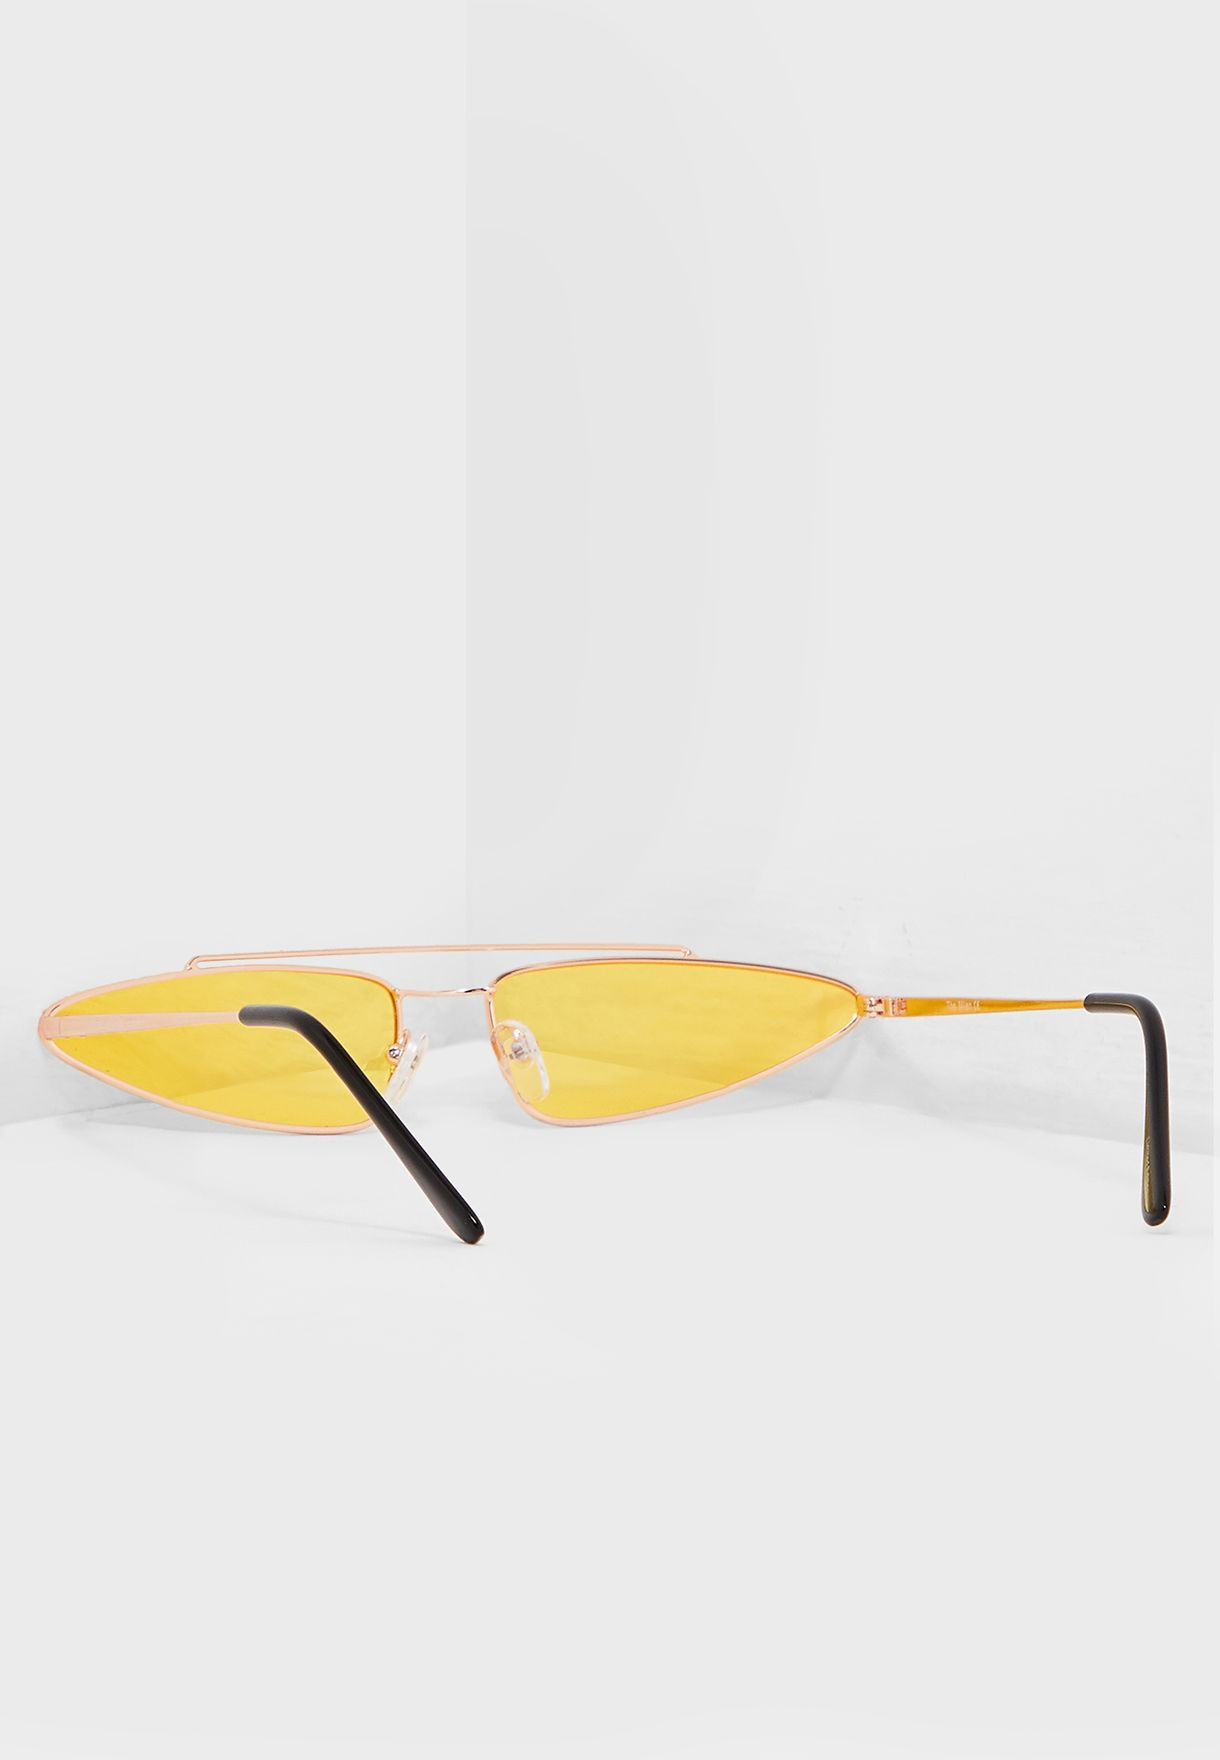 The Milan Cateye Sunglasses